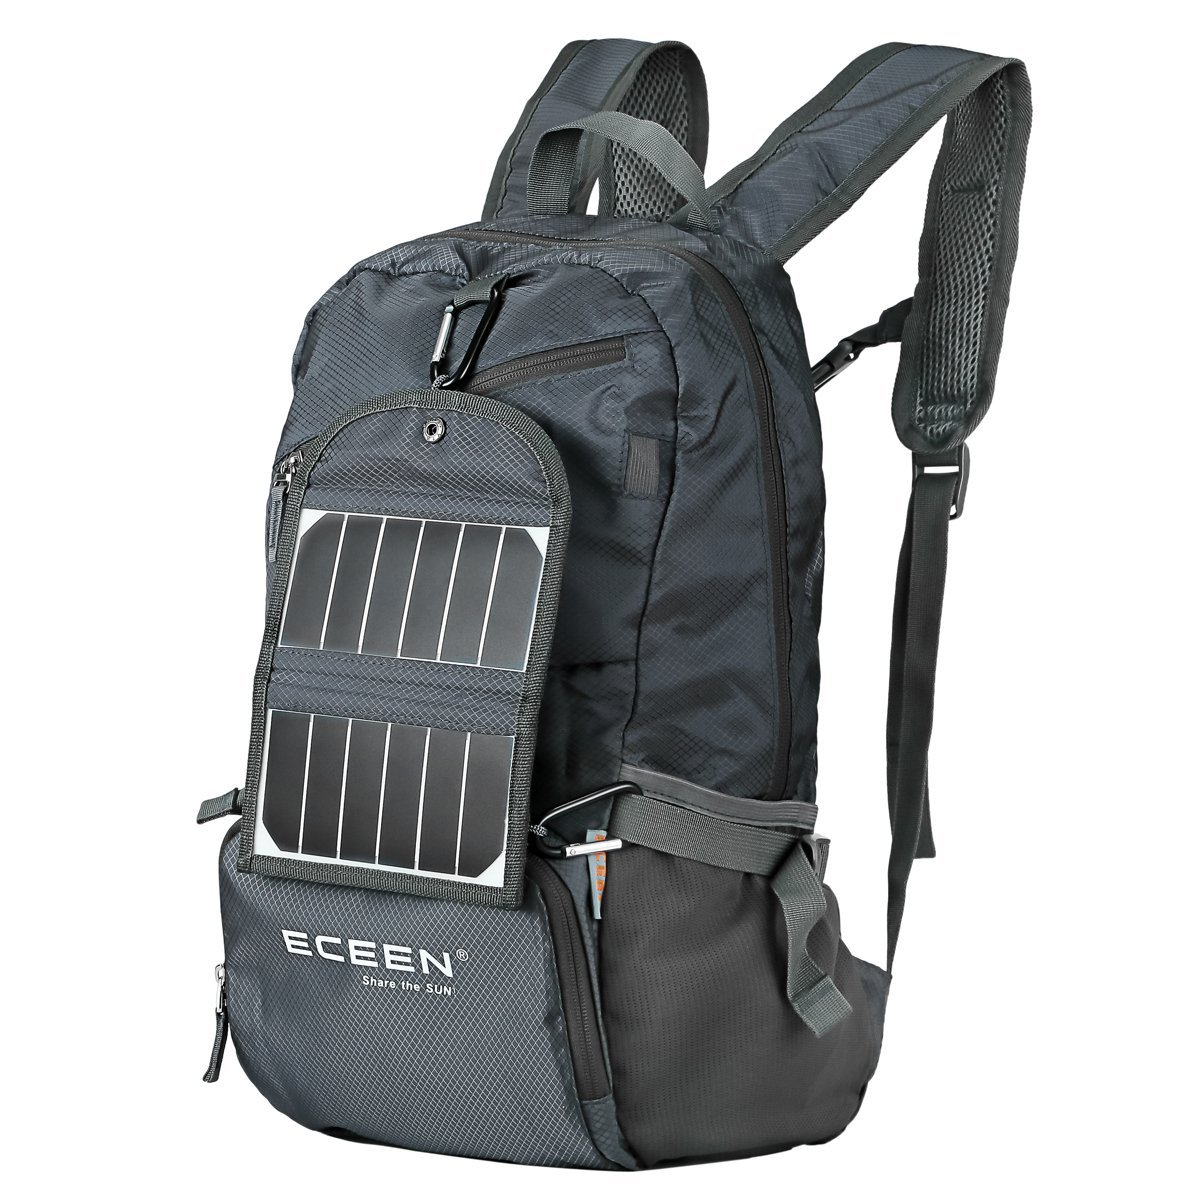 ECEEN Hiking Daypack with Solar Charger